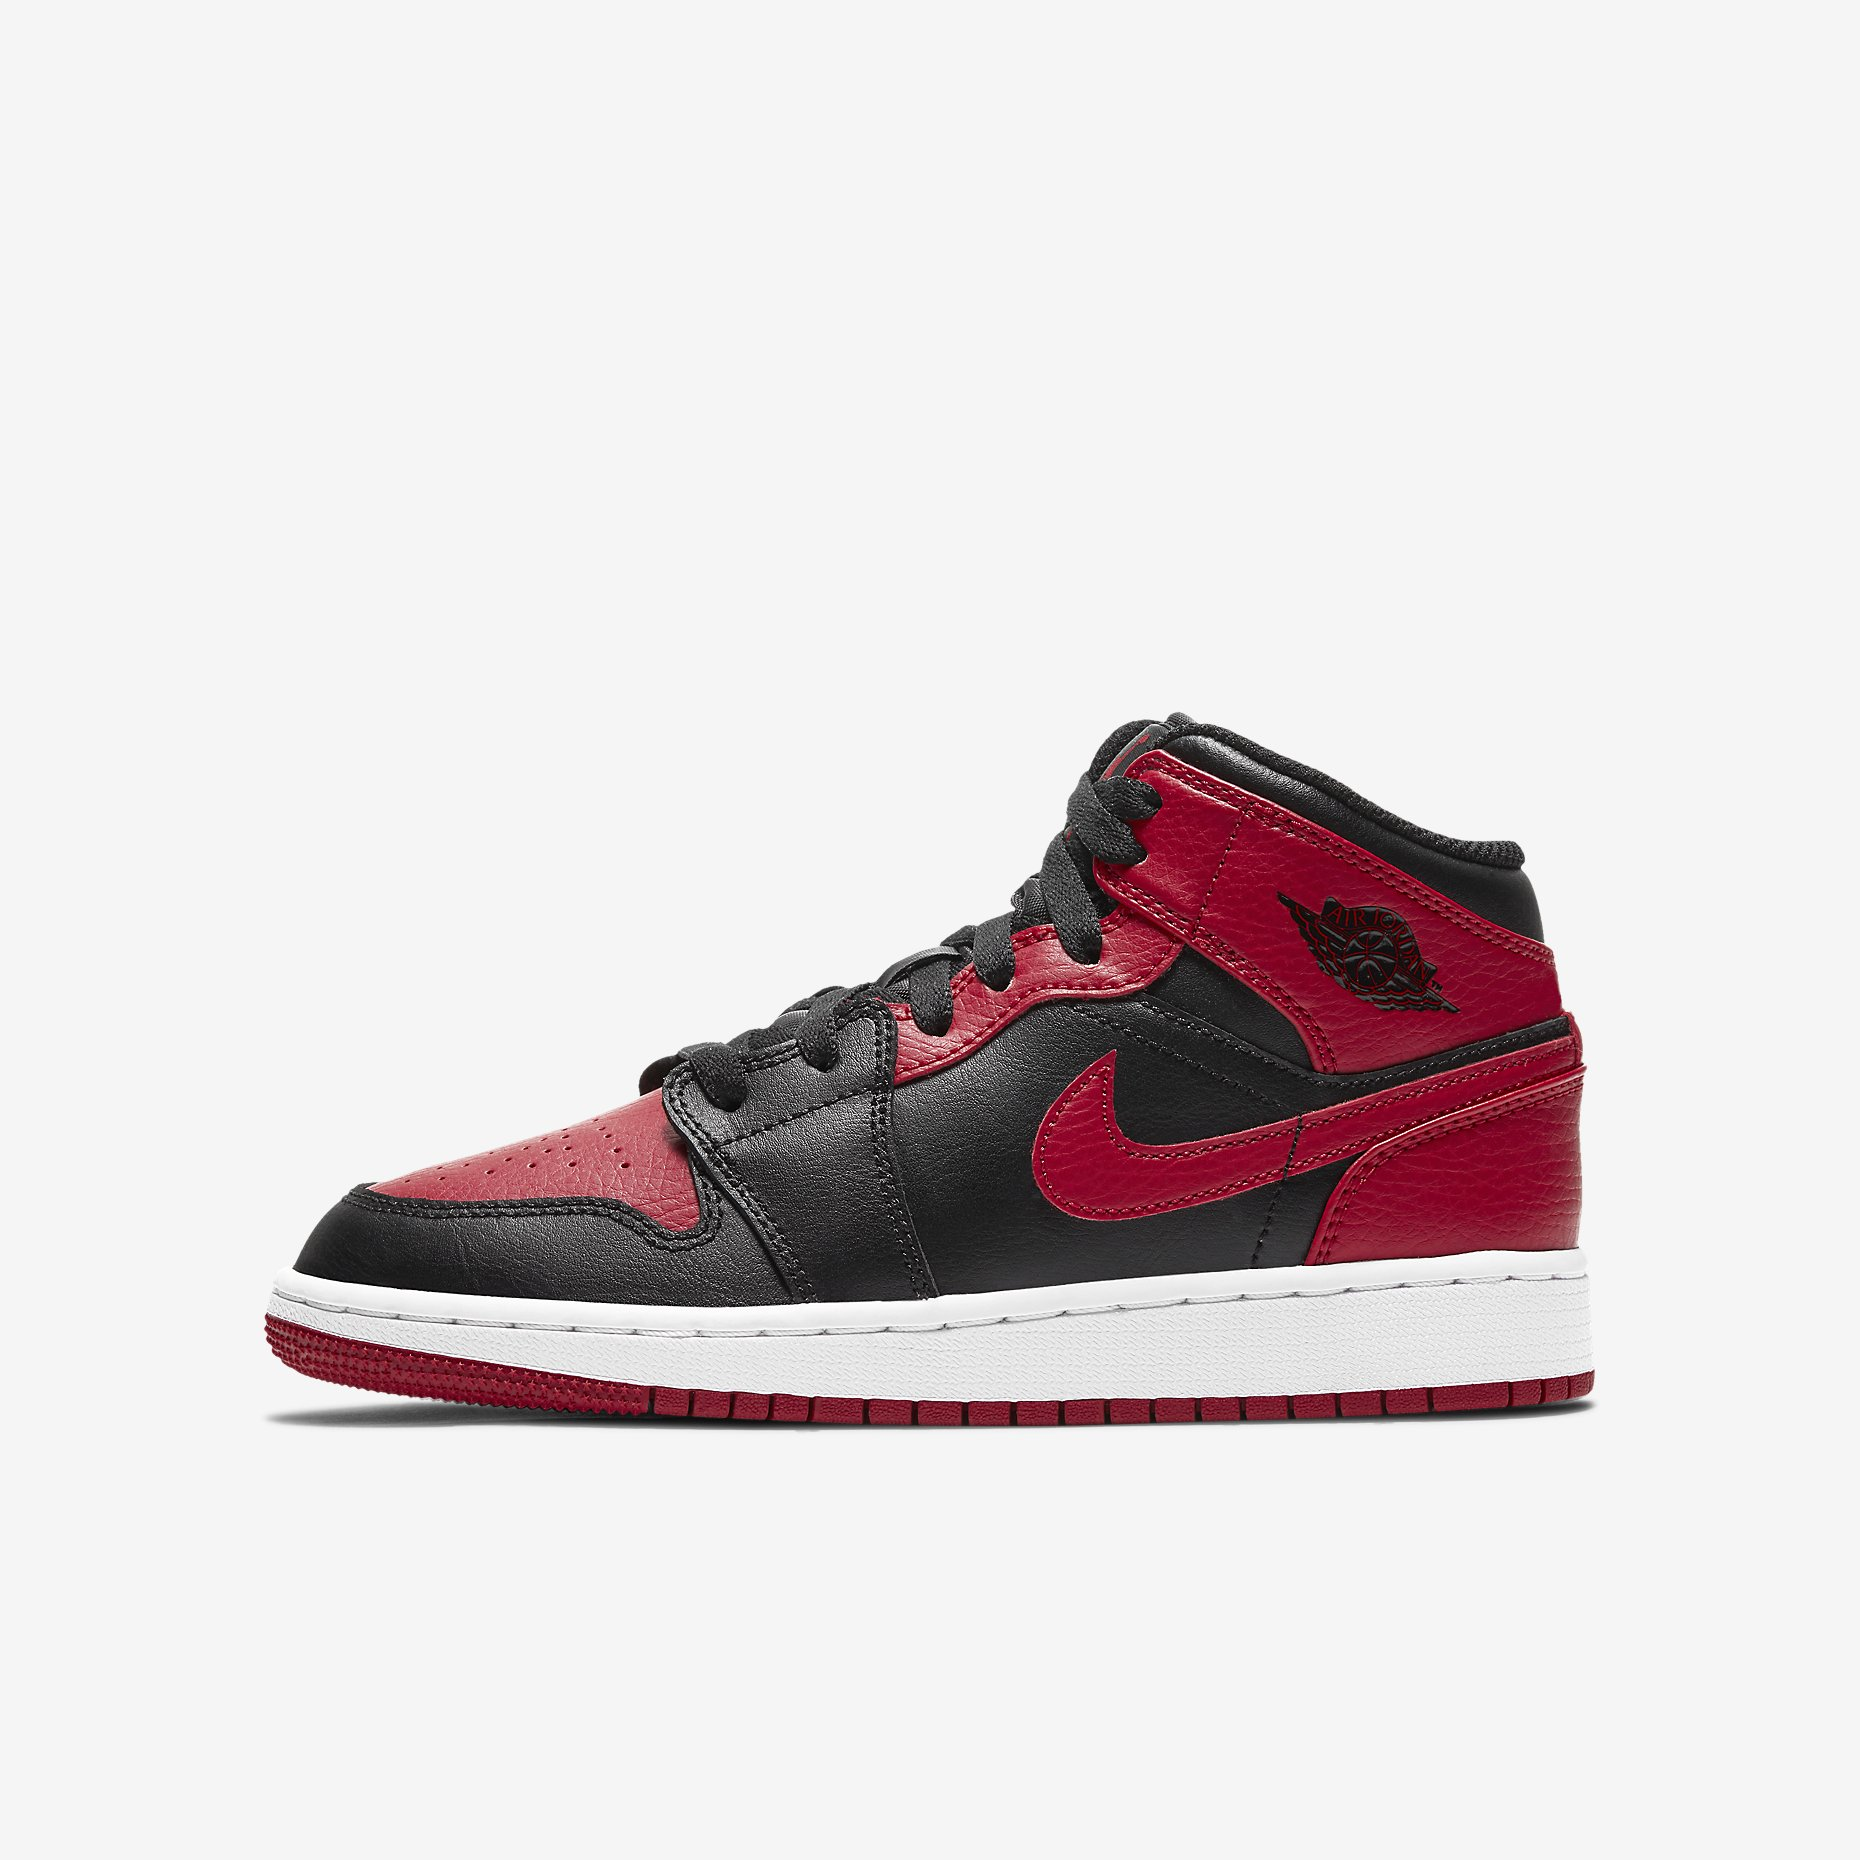 Air Jordan 1 Mid GS 'Bred' 2020}